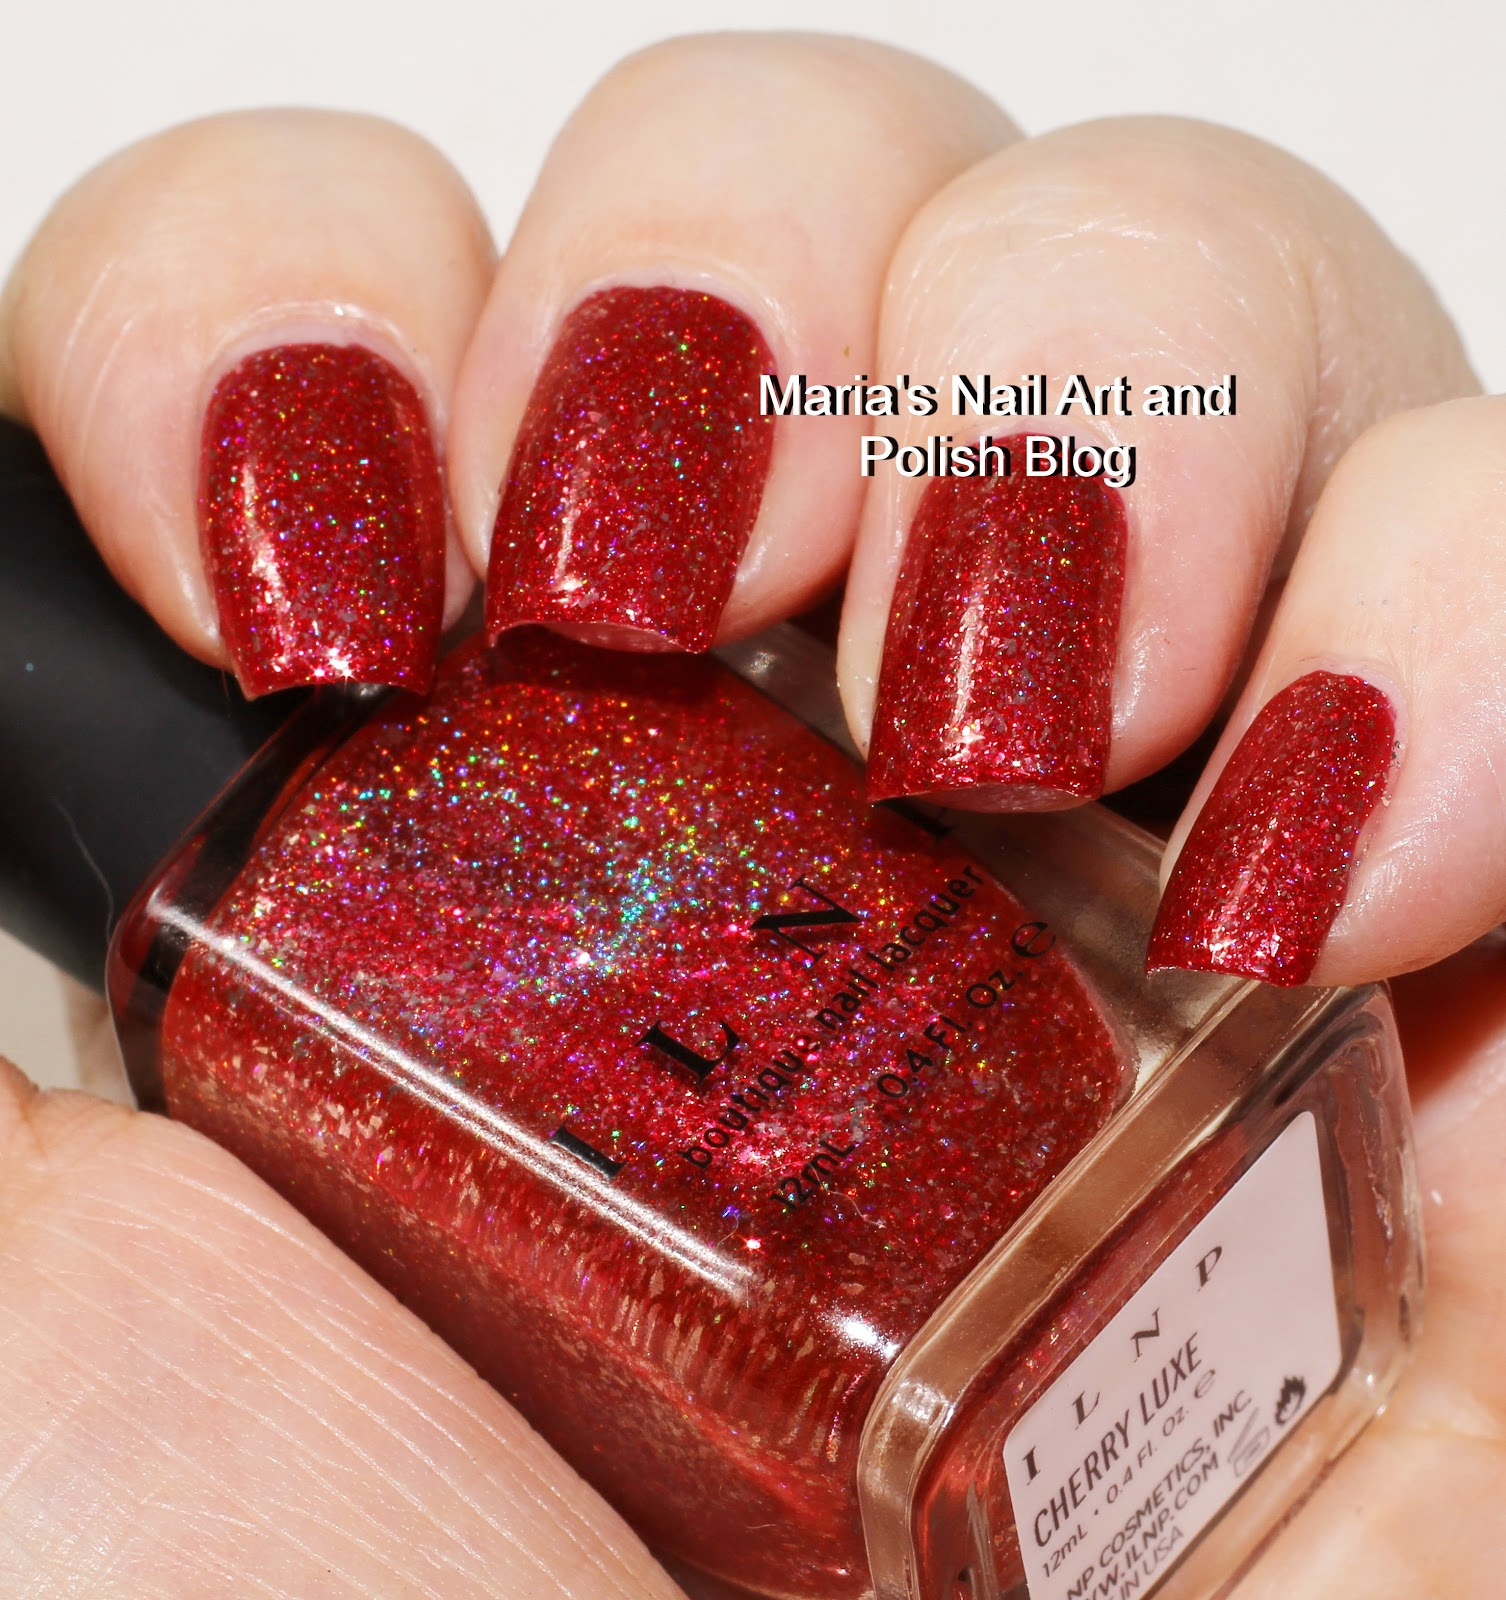 Marias Nail Art and Polish Blog: ILNP Cherry Luxe and XO swaches